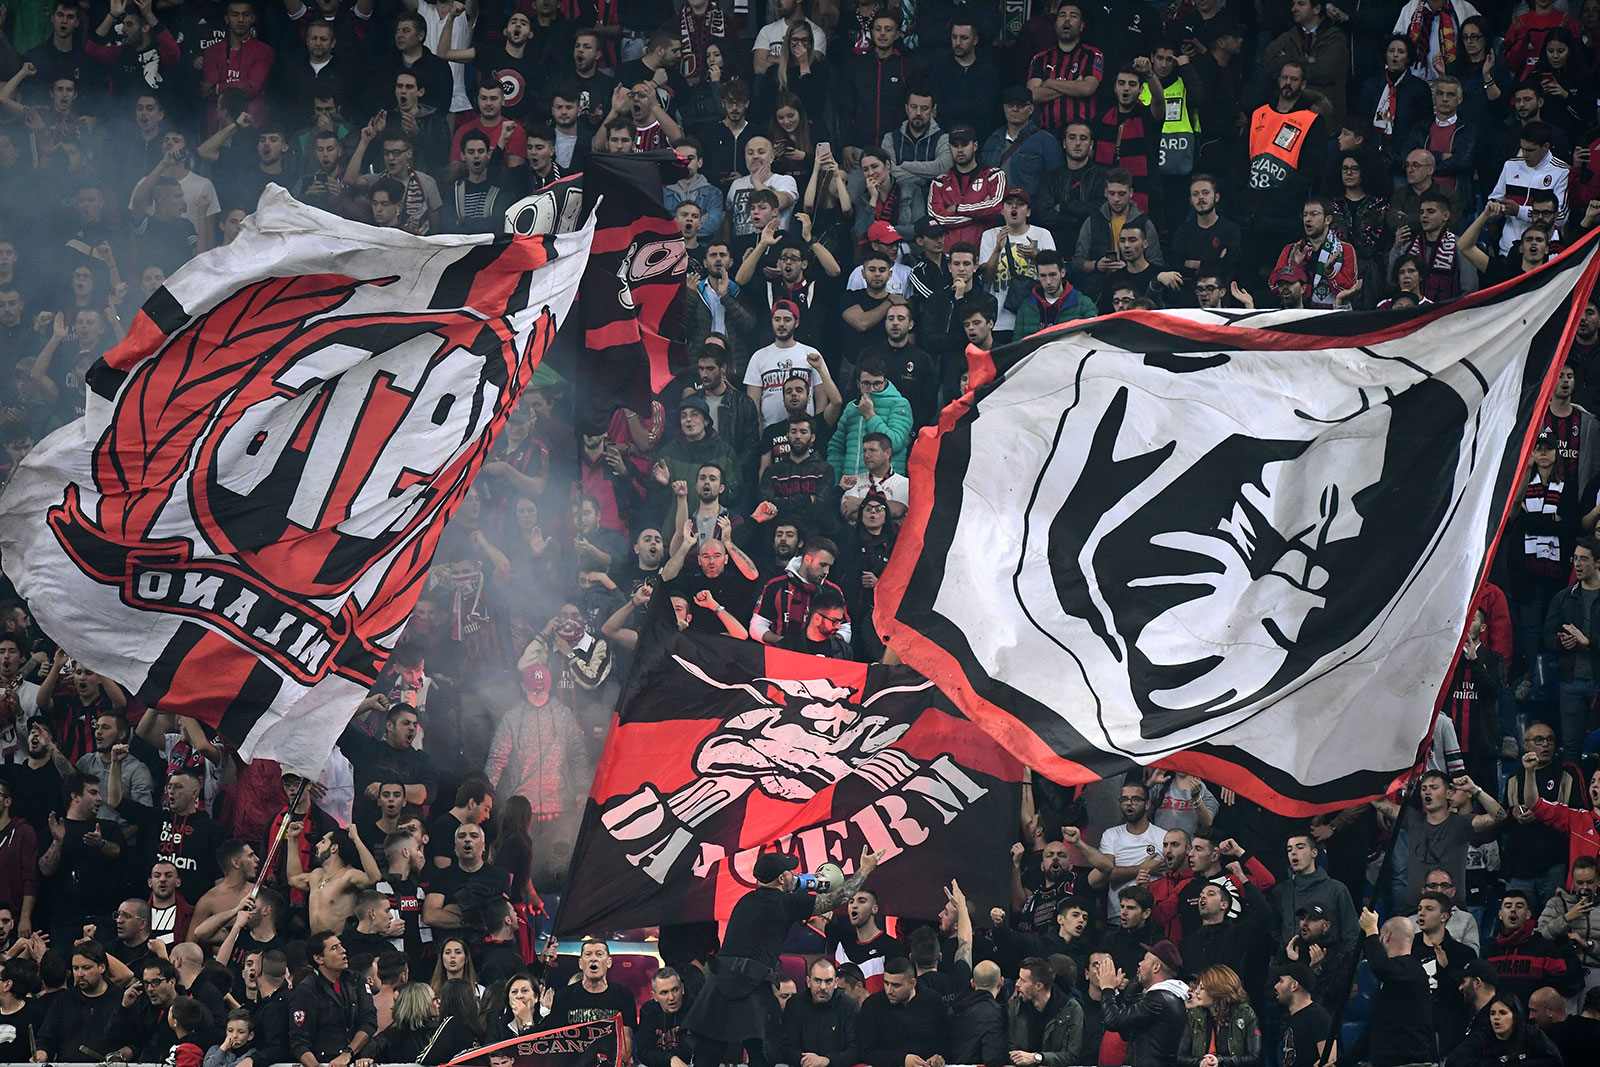 Milan fans during Milan-Real Betis at Stadio San Siro on October 25, 2018. (MIGUEL MEDINA/AFP/Getty Images)